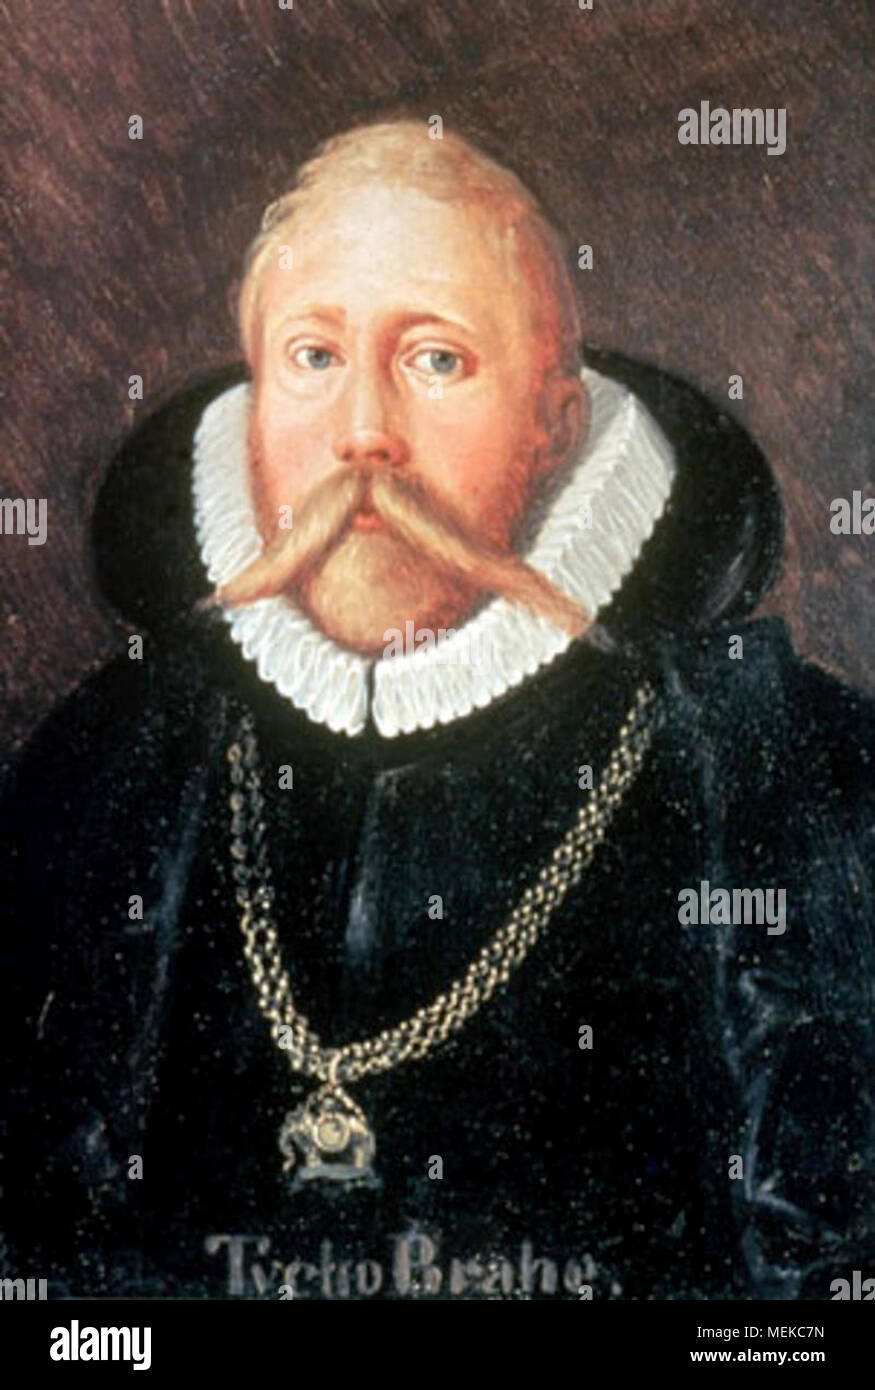 Tycho Brahe (1546 – 1601) Danish nobleman, astronomer, and writer known for his accurate and comprehensive astronomical and planetary observations. - Stock Image